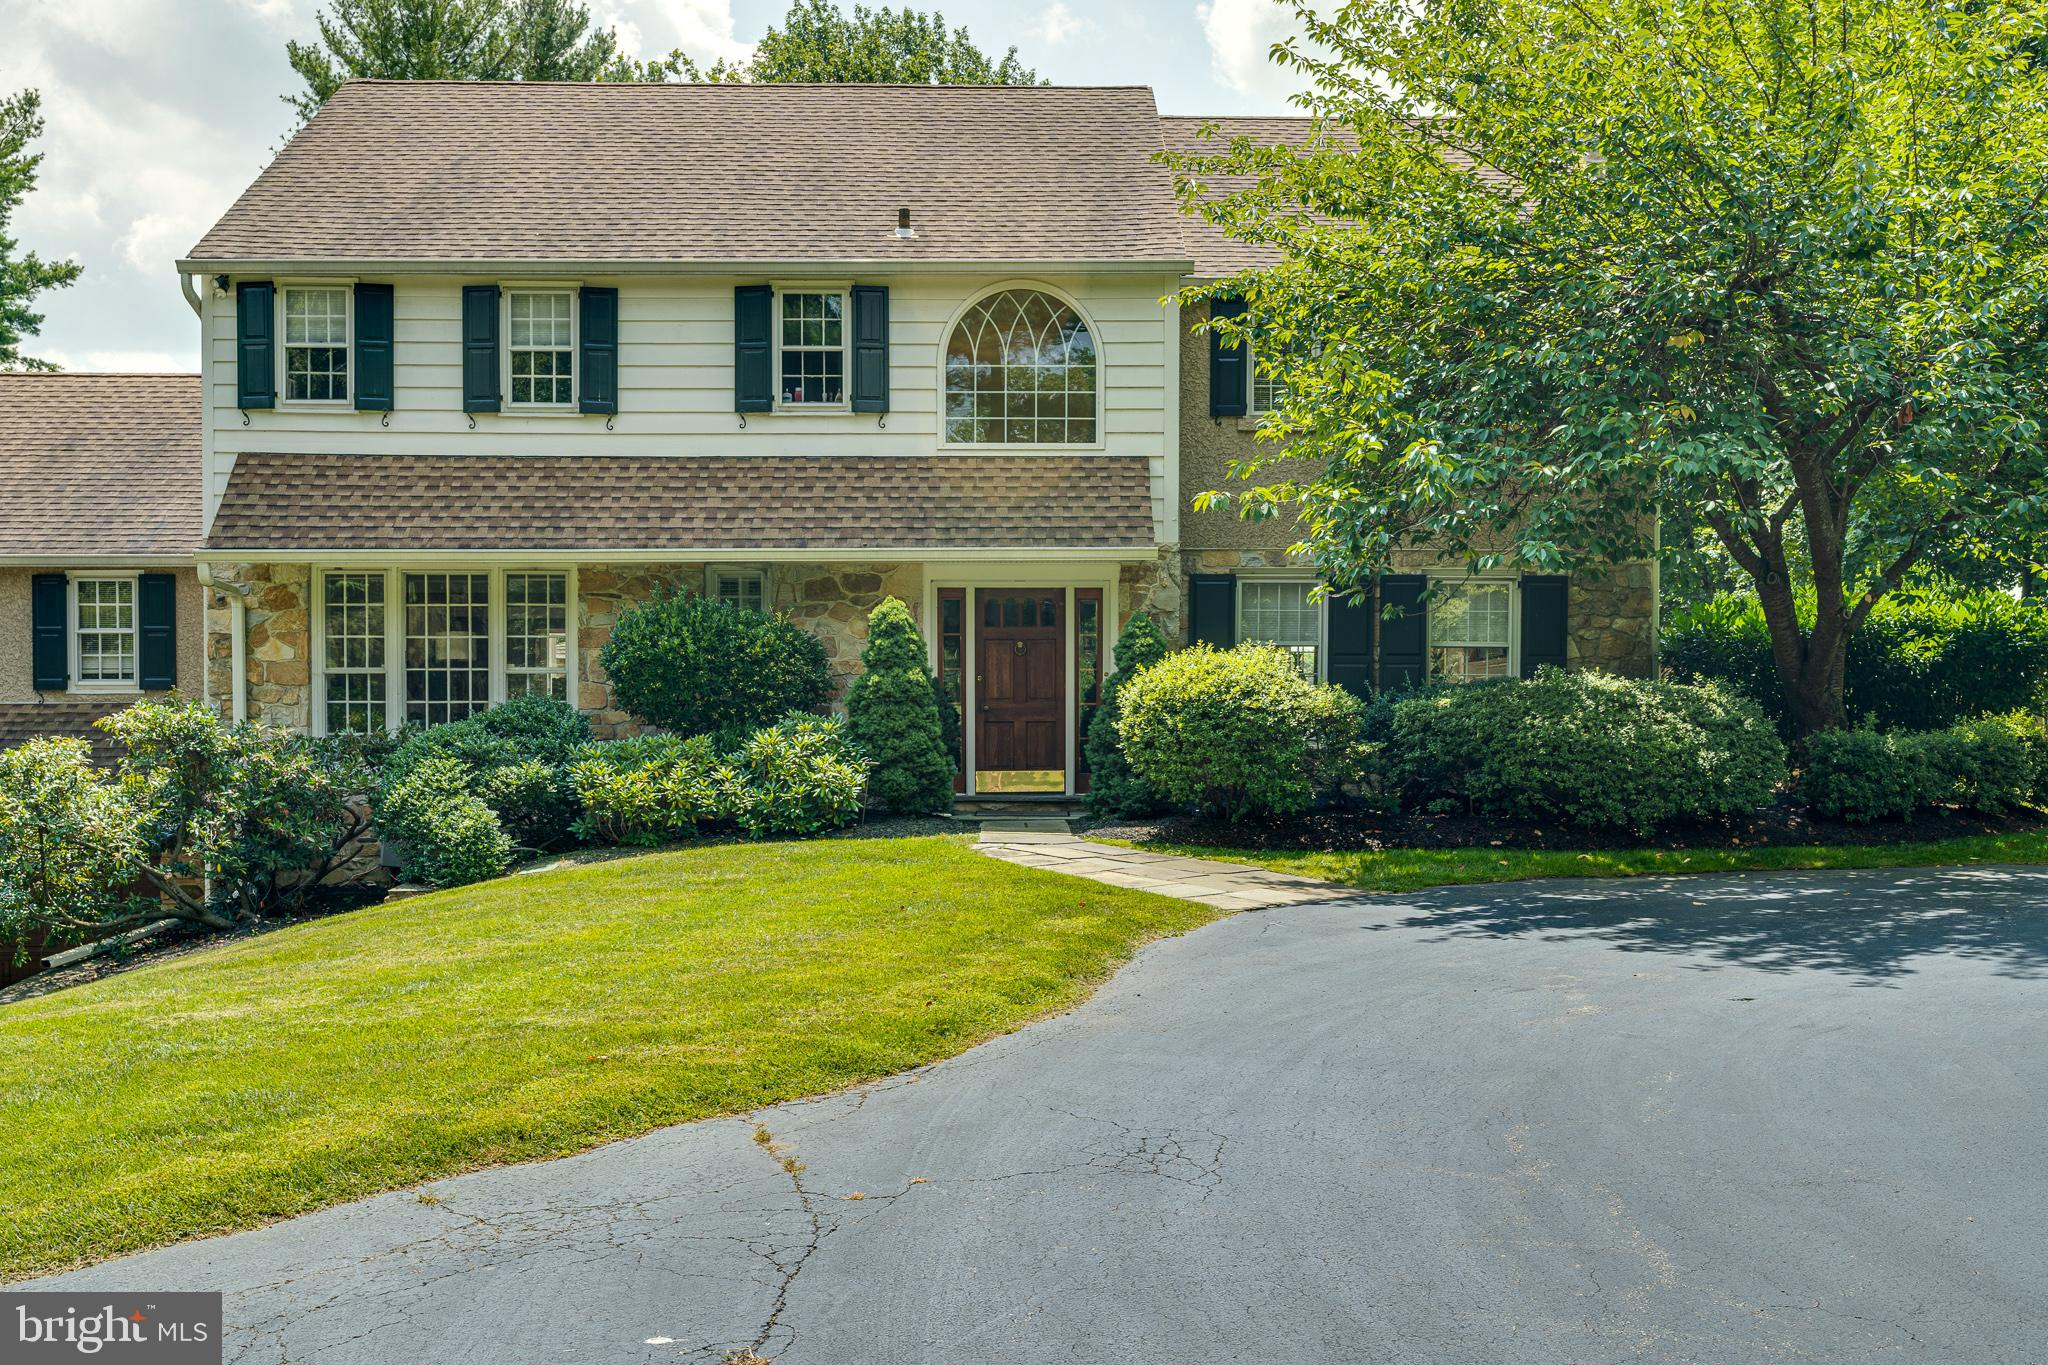 Rare opportunity to own a beautiful home that overlooks the 17th hole of the prestigious Merion East Golf Club.  Enjoy this 3 bedroom house on a private 1.69 acre lot with inground salt water pool, spa and gazebo and  a large 2-car attached garage.   The  circular driveway brings you to the front door surrounded by lush terraced landscaping and magnificent trees.  The 2 story center hallway leads you into the living room with fireplace, a staircase to the 2nd floor, a 1/2 bath, stairway to basement and eat in kitchen.  There is a fully equipped first floor laundry room and family room/office with fireplace full bath and wet bar.  The light filled dining room can be entered from the kitchen and living room and overlooks the beautiful deck and grounds.  The upstairs has a large master suite with master bath and walk in closets and walk up attic.  There are 2 additional bedrooms and   full bathroom completing the upstairs space.  The basement has a full walk out which leads to the garage.  The property was renovated  in 2014. Included in the renovations were:  new roof, attic insultation, exterior stucco and cedar siding, paint-inside and out, refinished hard wood floors, new kitchen appliances, washer & dryer, new high efficiency heater installed in the unfinished full basement, air conditioning with 3 zone secondary programmable thermostat,  secondary air for upstairs, estate fencing, new back patio doors and automated irrigation system.  pool & spa entirely renovated with all new equipment, new plaster & tile.  New back patio doors in 2018. Recent renovations (2019) include deck refinishing .  This property is within walking distance to Haverford College, shopping, transportation,  hospitals and restaurants.  Don't miss this rare opportunity for convenience and luxury.